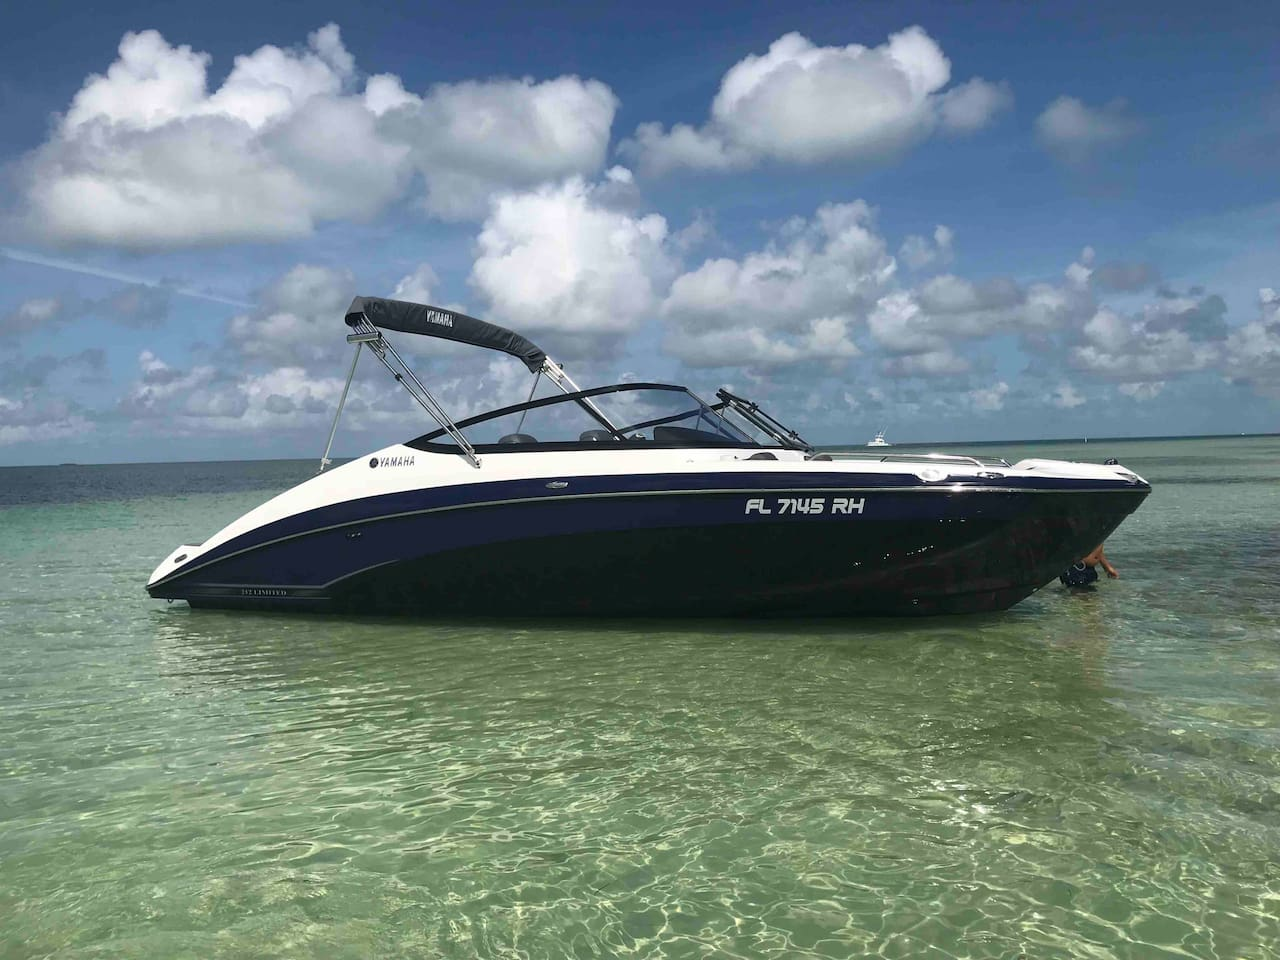 2017 Yamaha Jet boat that is available for rent with the house for $600 three days additional days $100/day. It will be in the back of the house gassed up and in canal ready for your enjoyment whether cruising or fishing fits 10ppl.